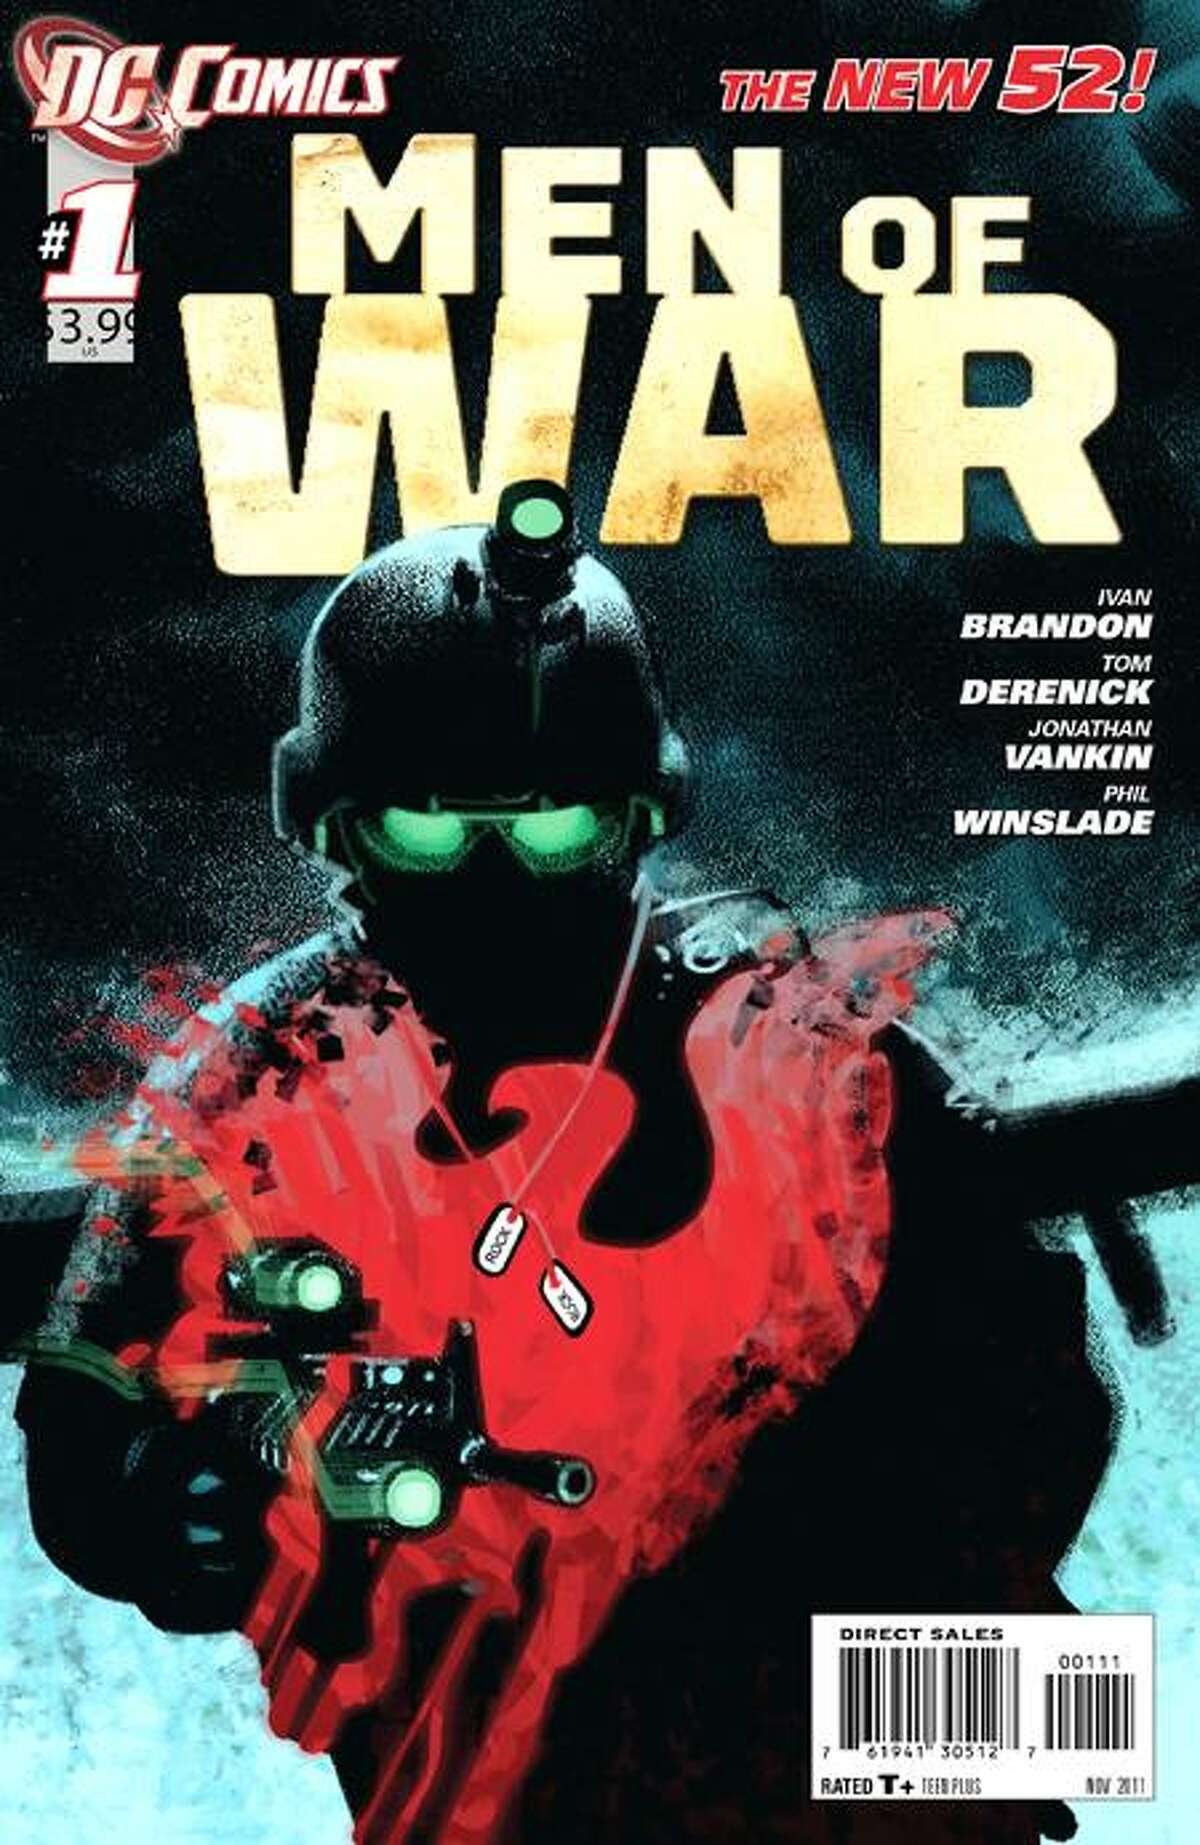 In this comic book cover released by DC Comics,